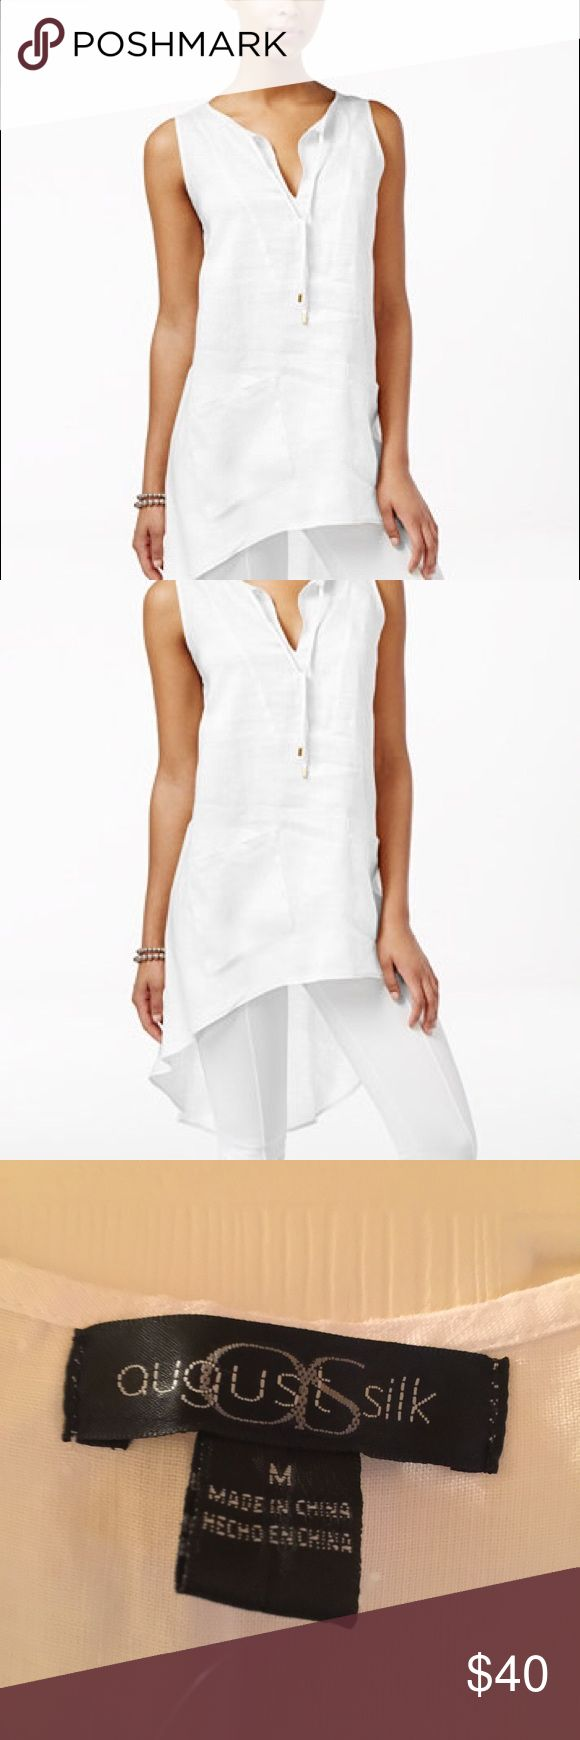 NWOT August Silk White Linen High-Low Tunic Lend a contemporary feel to your wardrobe with August Silk's linen tunic featuring a high-low hem and an effortlessly chic silhouette. This beautiful, elegant tunic is described as follows: V-neckline with tie front detail, pull-over style, sleeveless, machine wash, high-low hem, hits at hips, imported, unlined, and front pockets. August Silk Tops Tunics